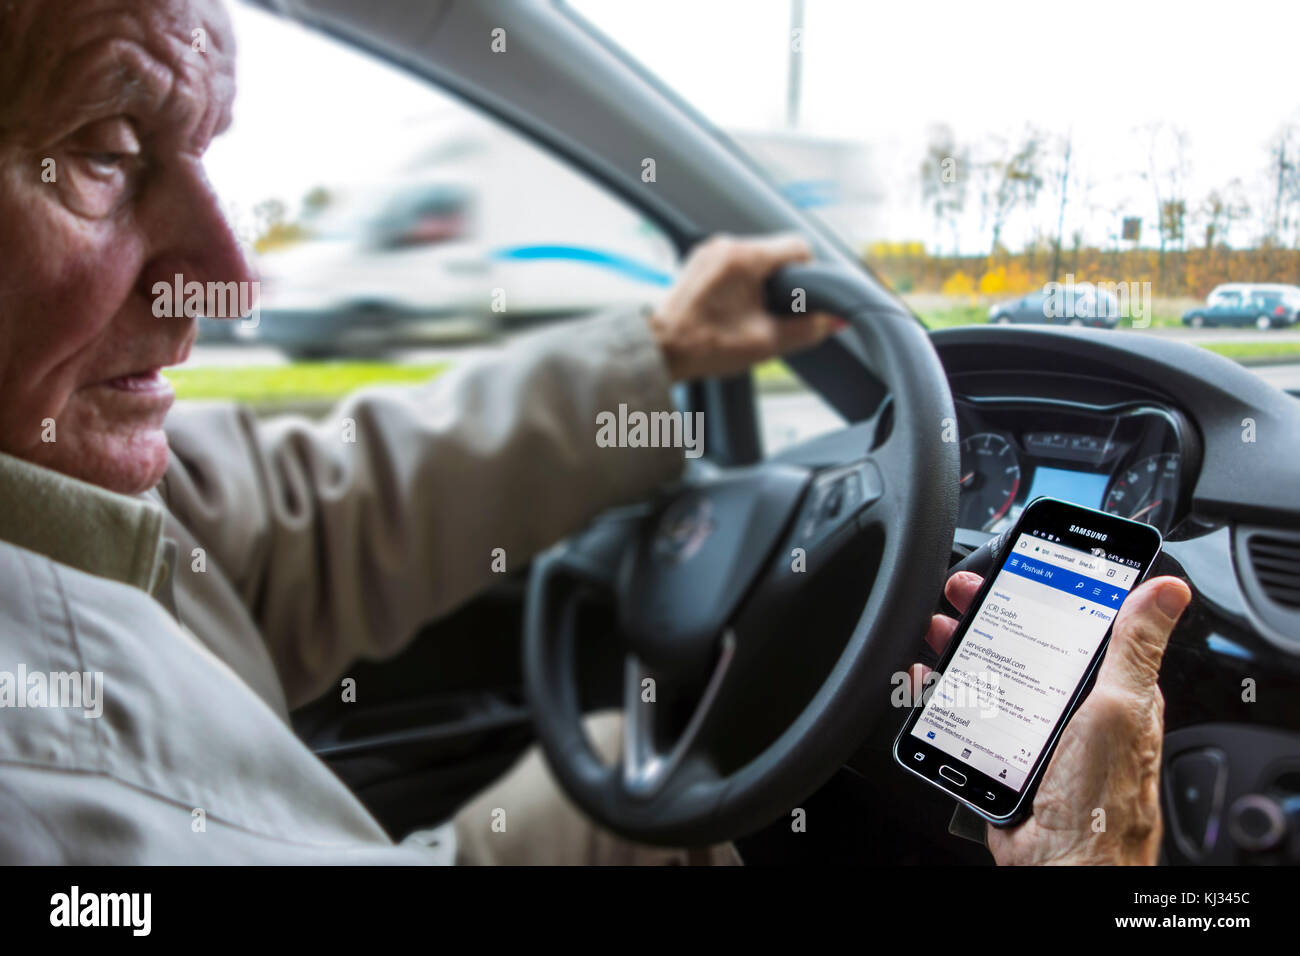 Irresponsible elderly man at steering wheel checking messages on smart phone / smartphone / cellphone while driving - Stock Image